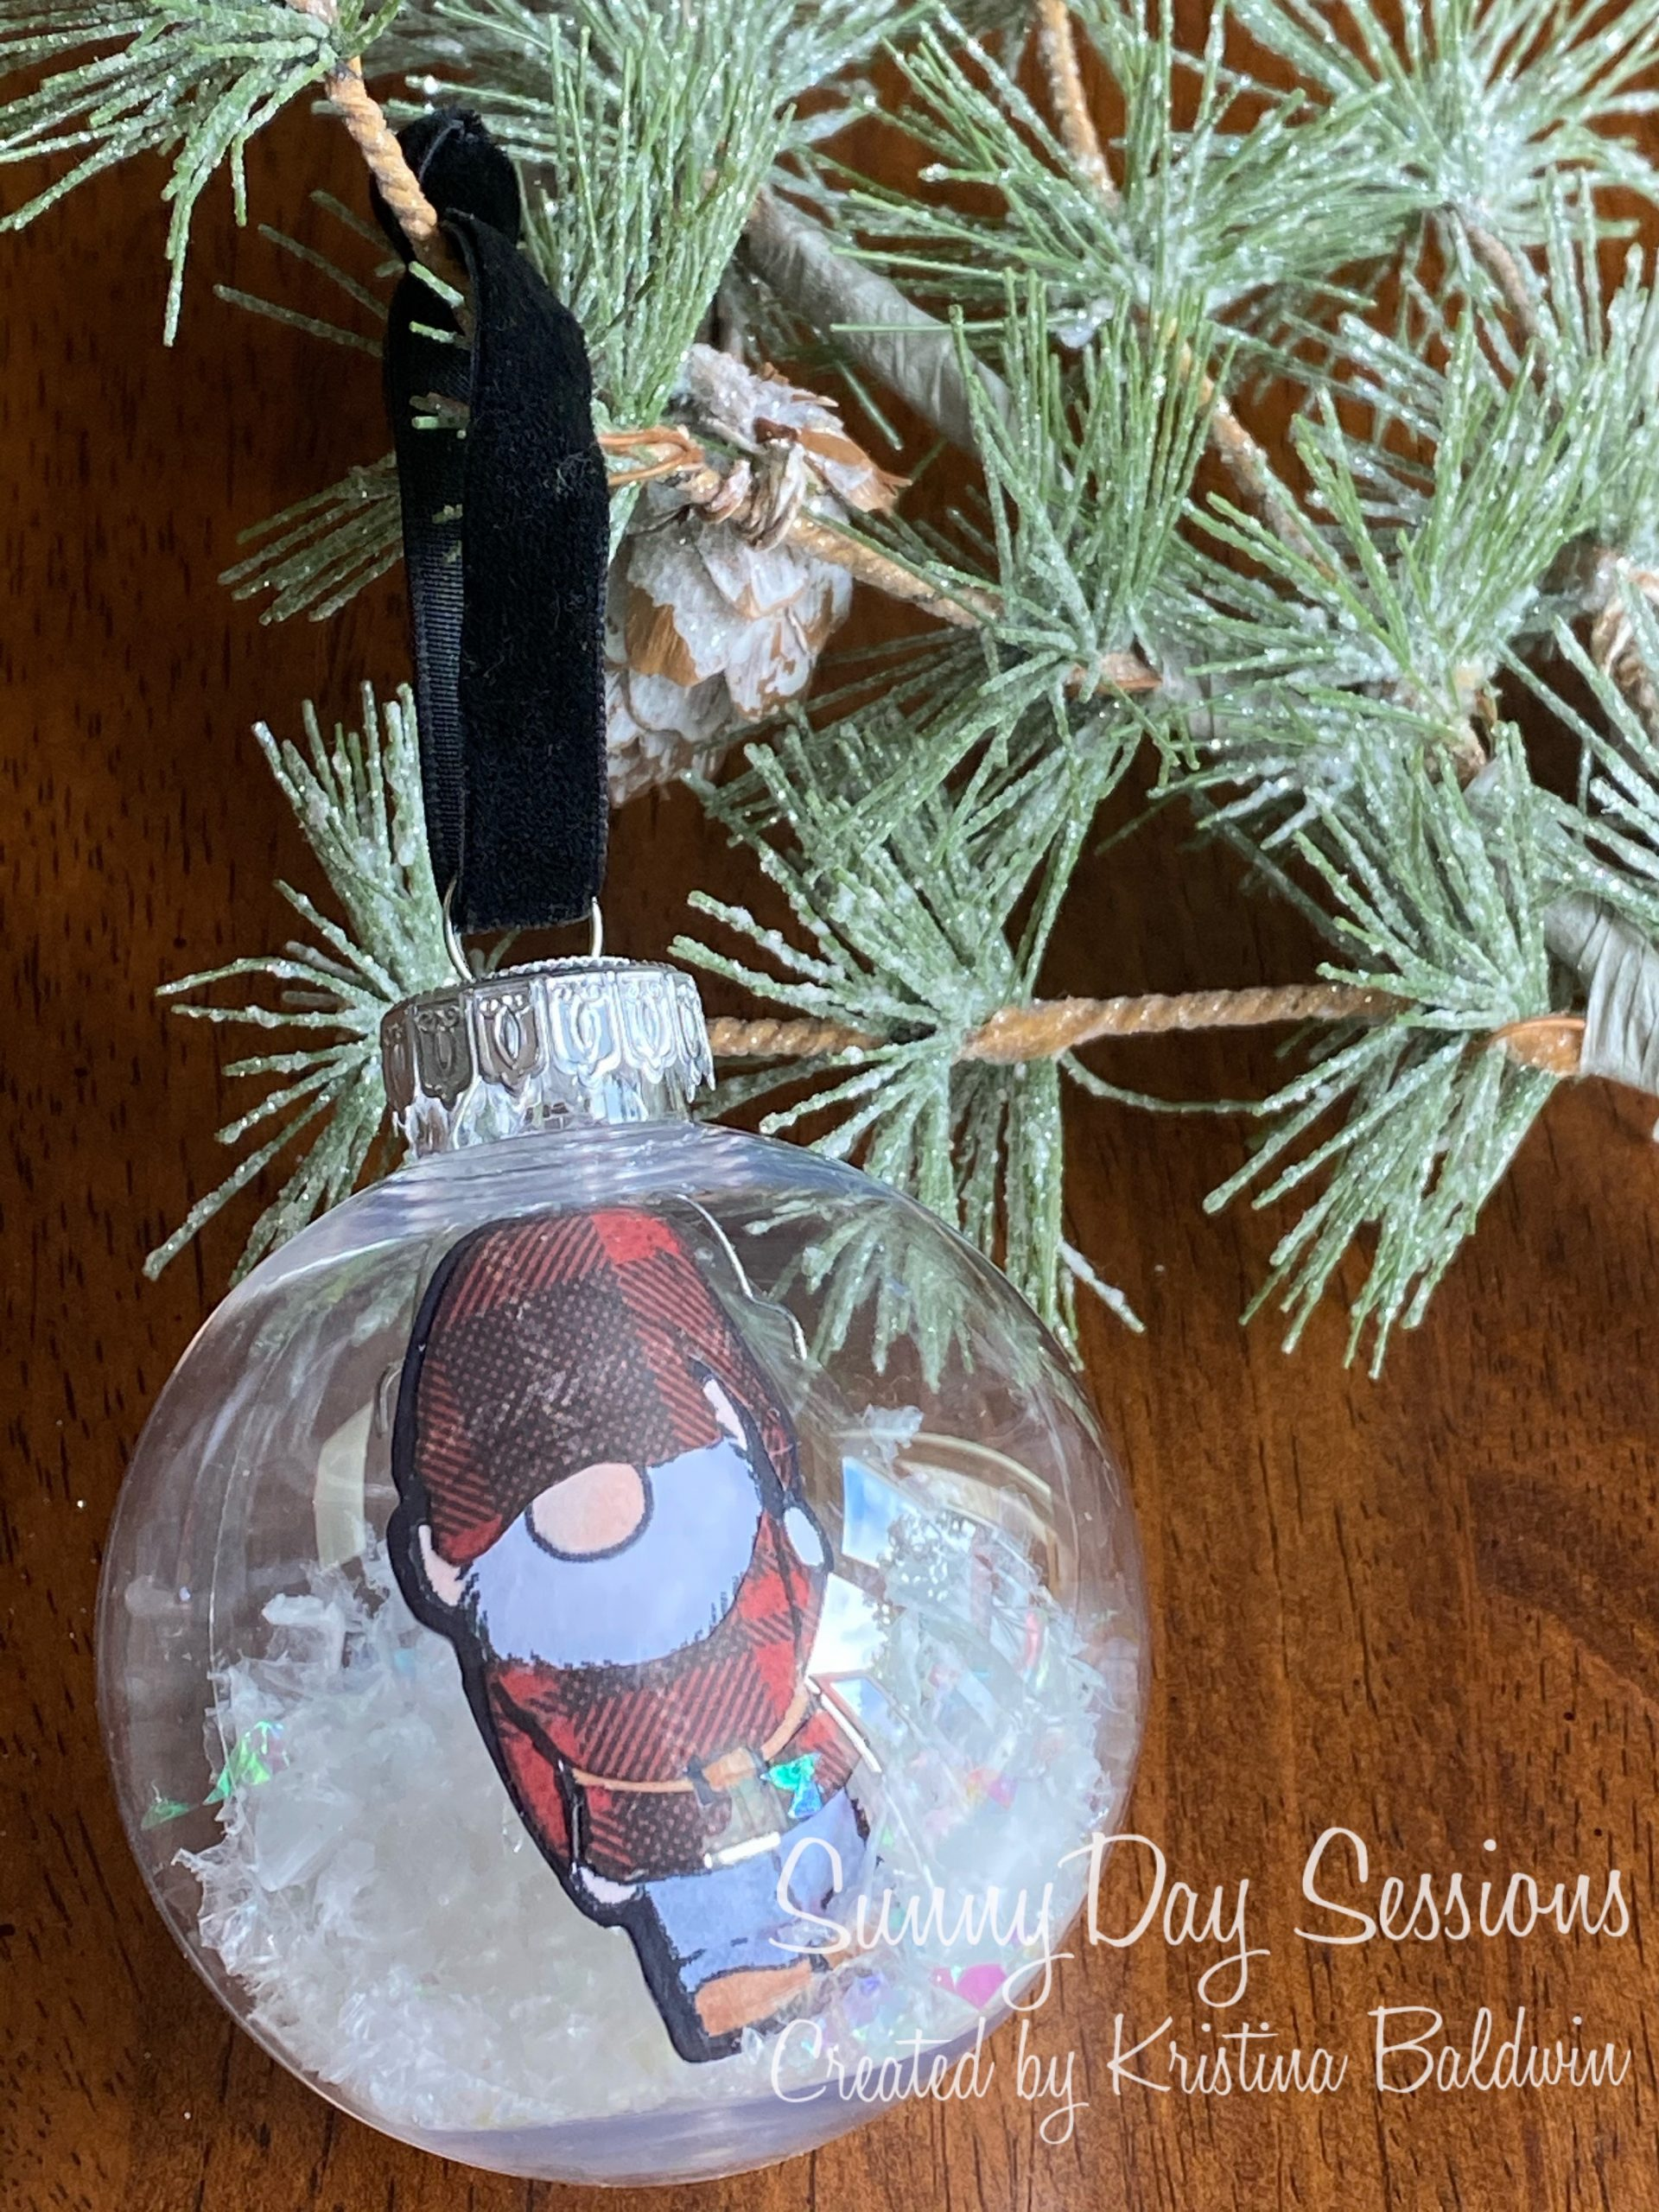 SunnyDay Sessions Ornament Project